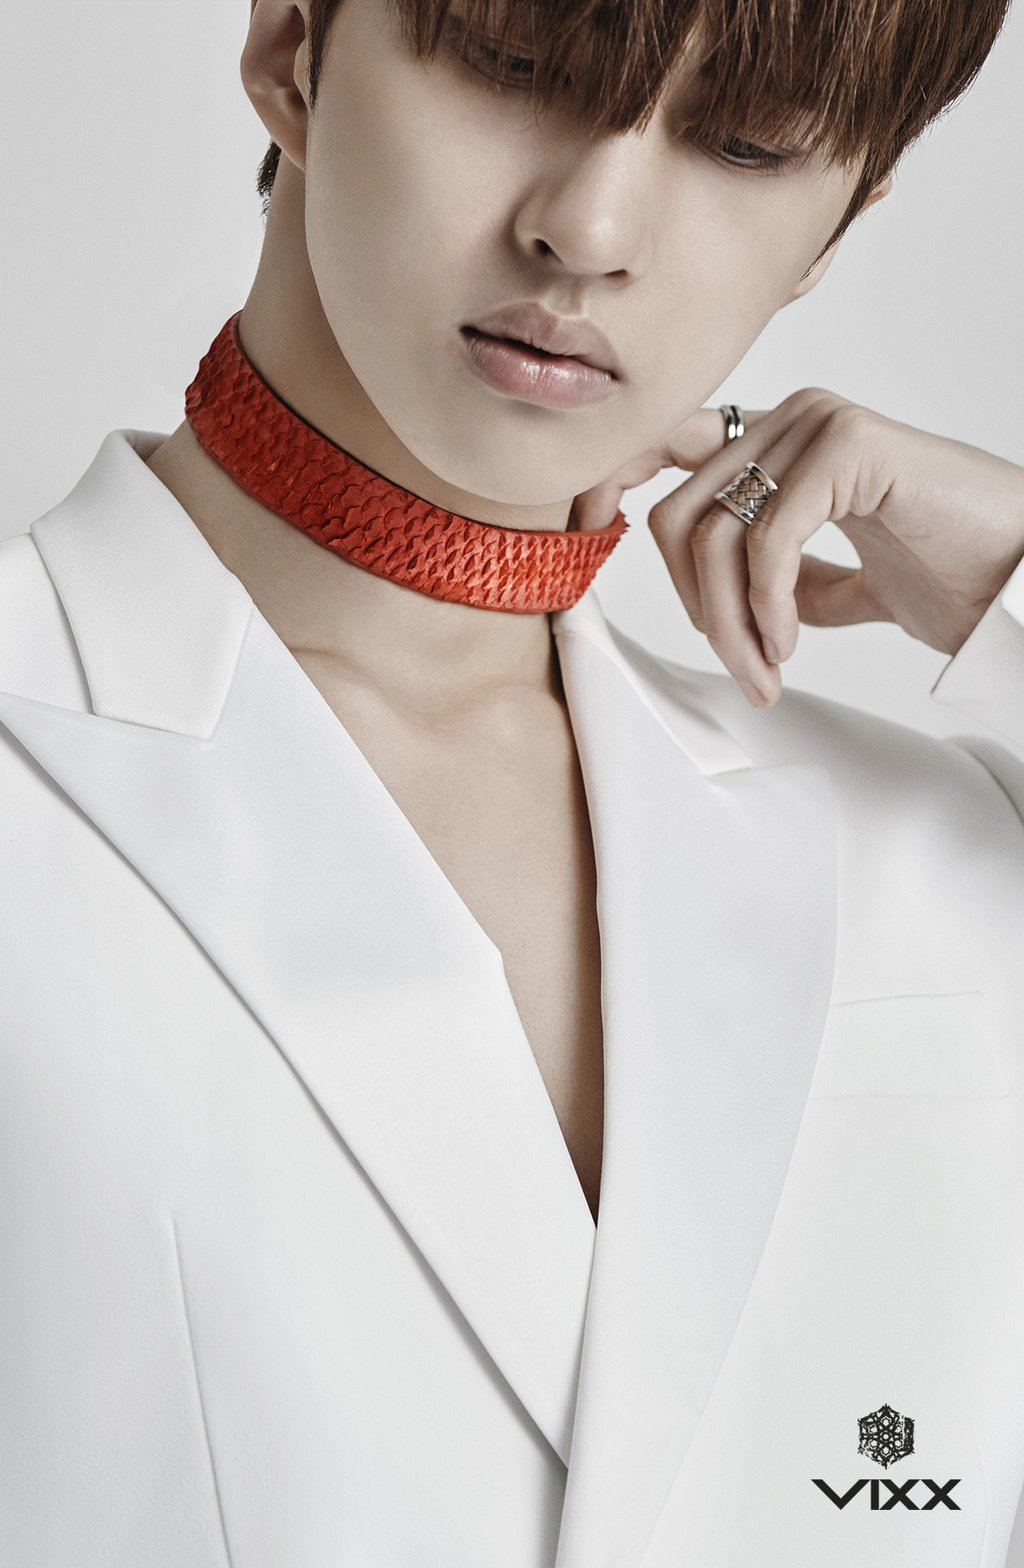 Vixx Chained Up Album Cover